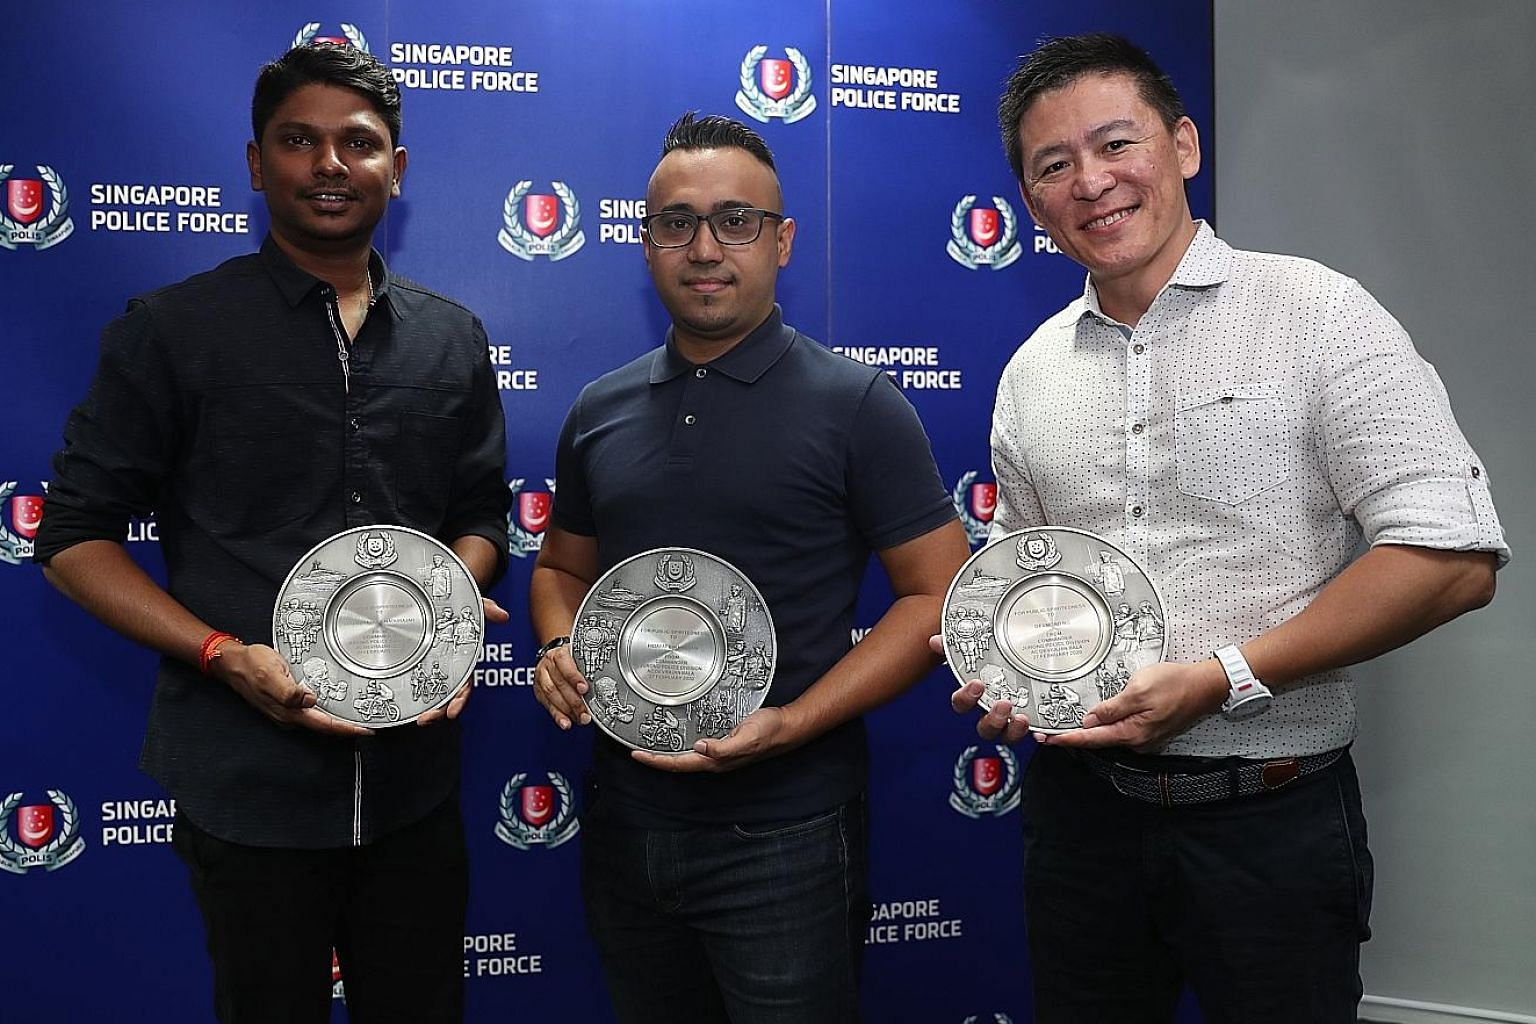 (From far left) Security officer Logaisraja Nadurajah, Certis auxiliary police officer Hidayat Hassan and Grab liaison officer Desmond Ng with their Public Spiritedness awards at Jurong Police Division last week.